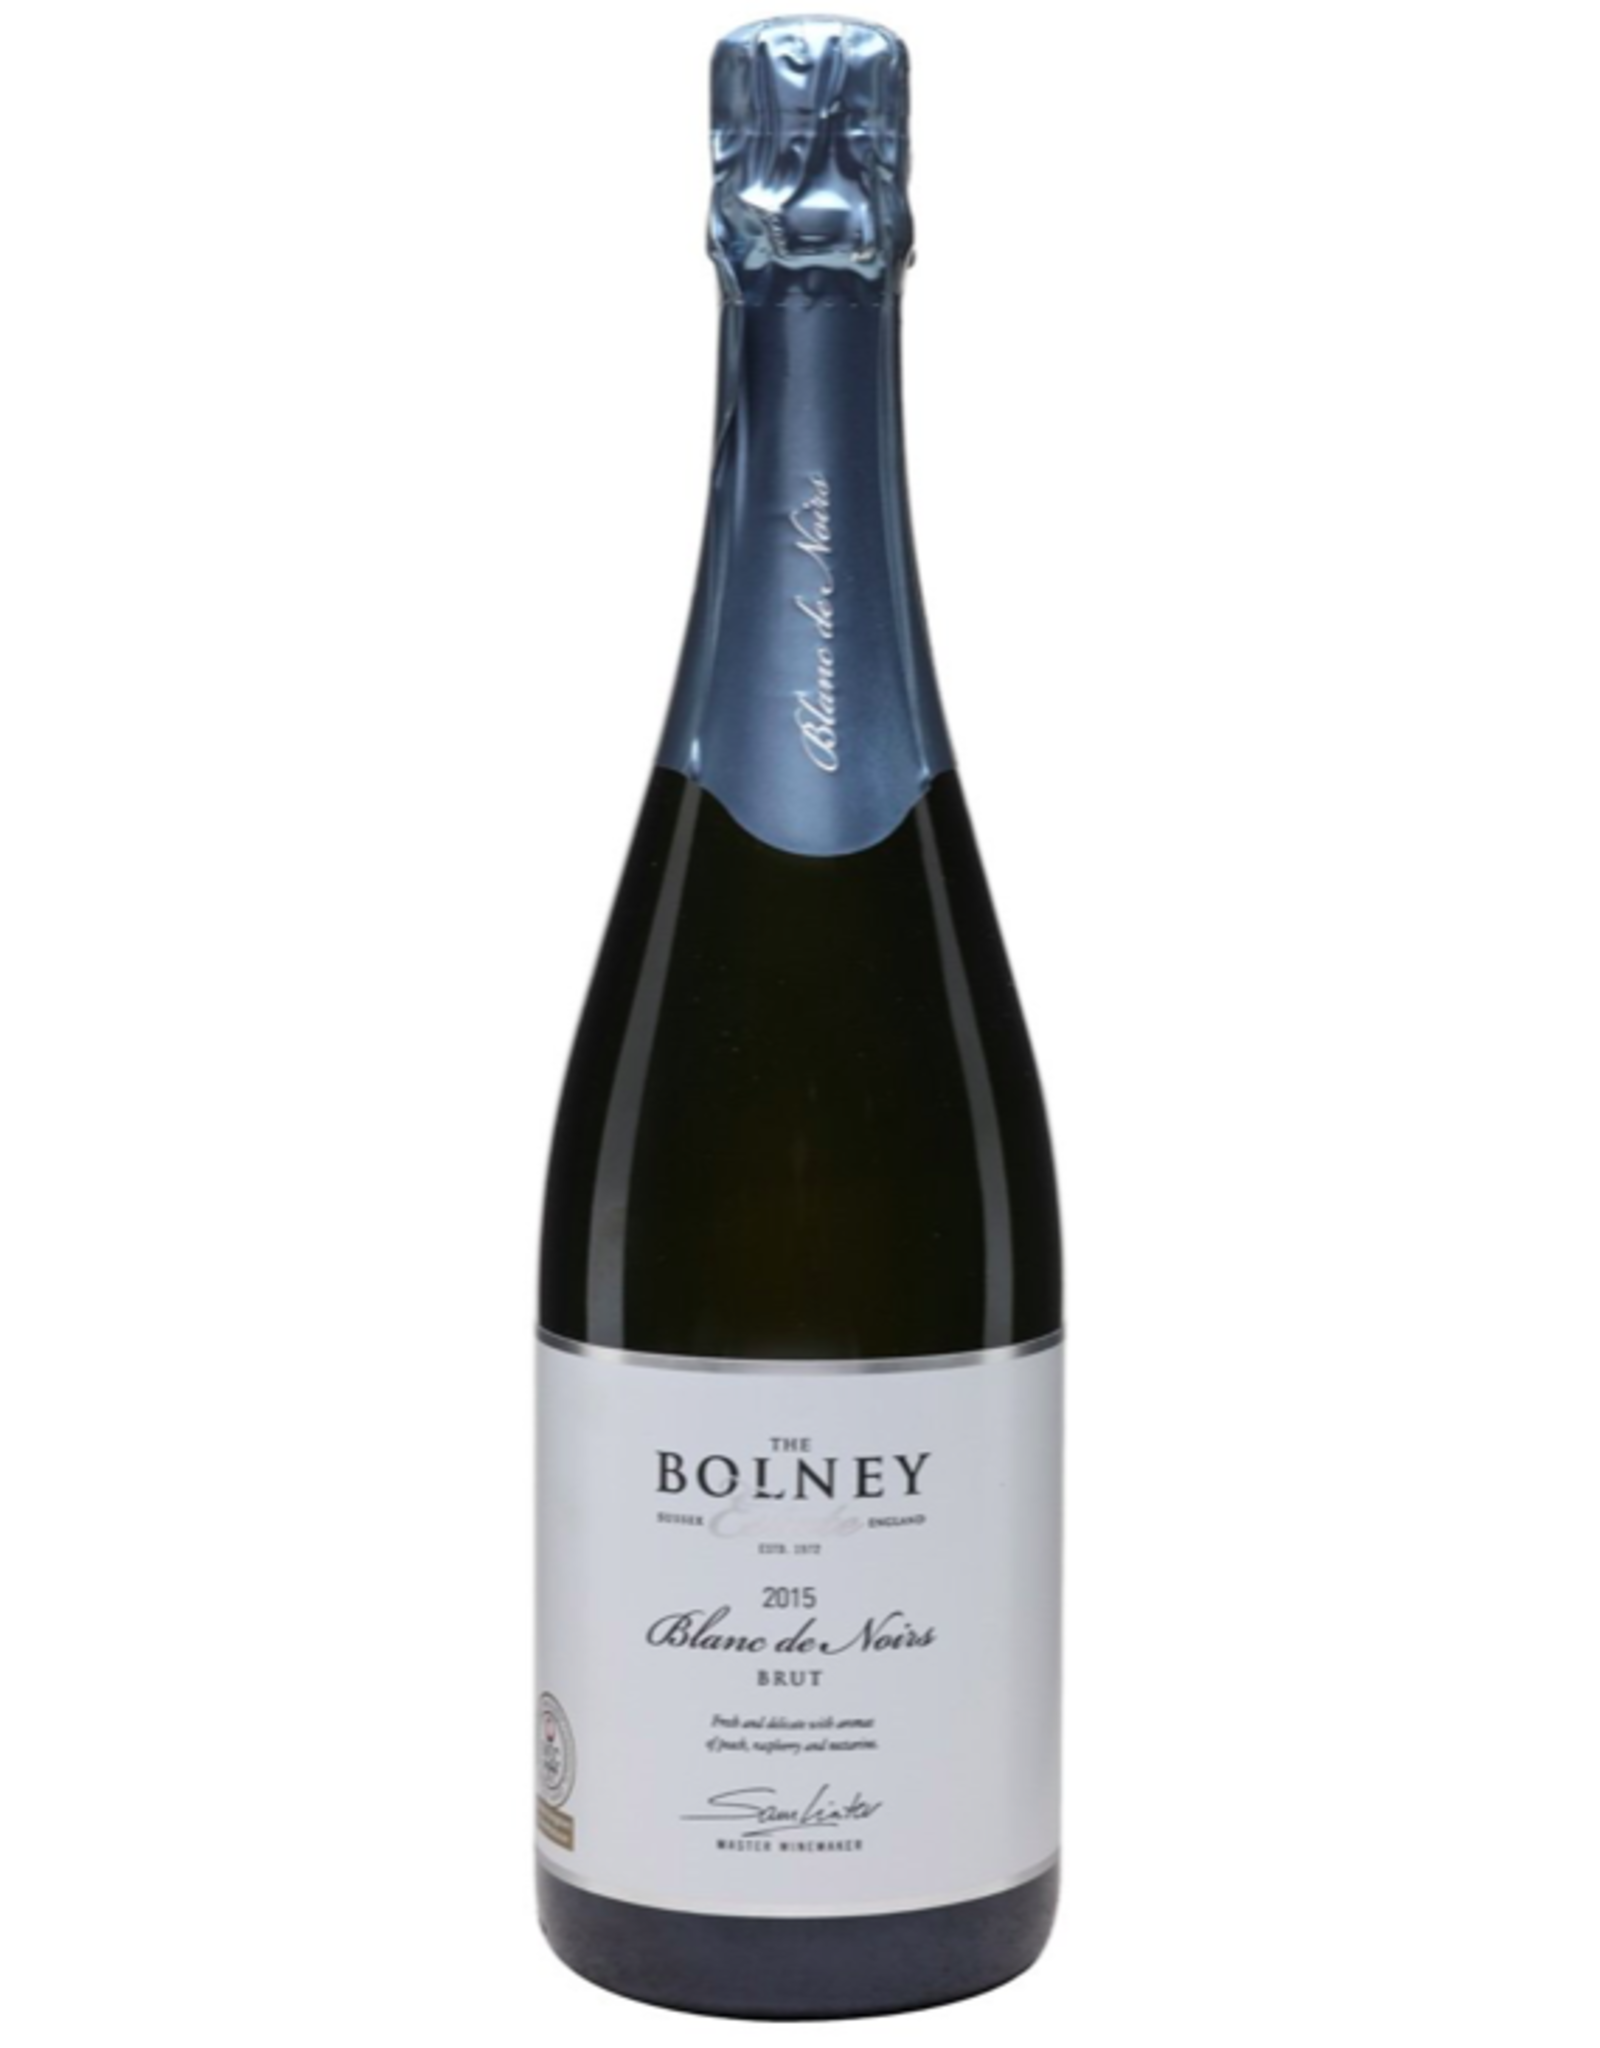 The Bolney Estate Blanc de Noir Brut 2015